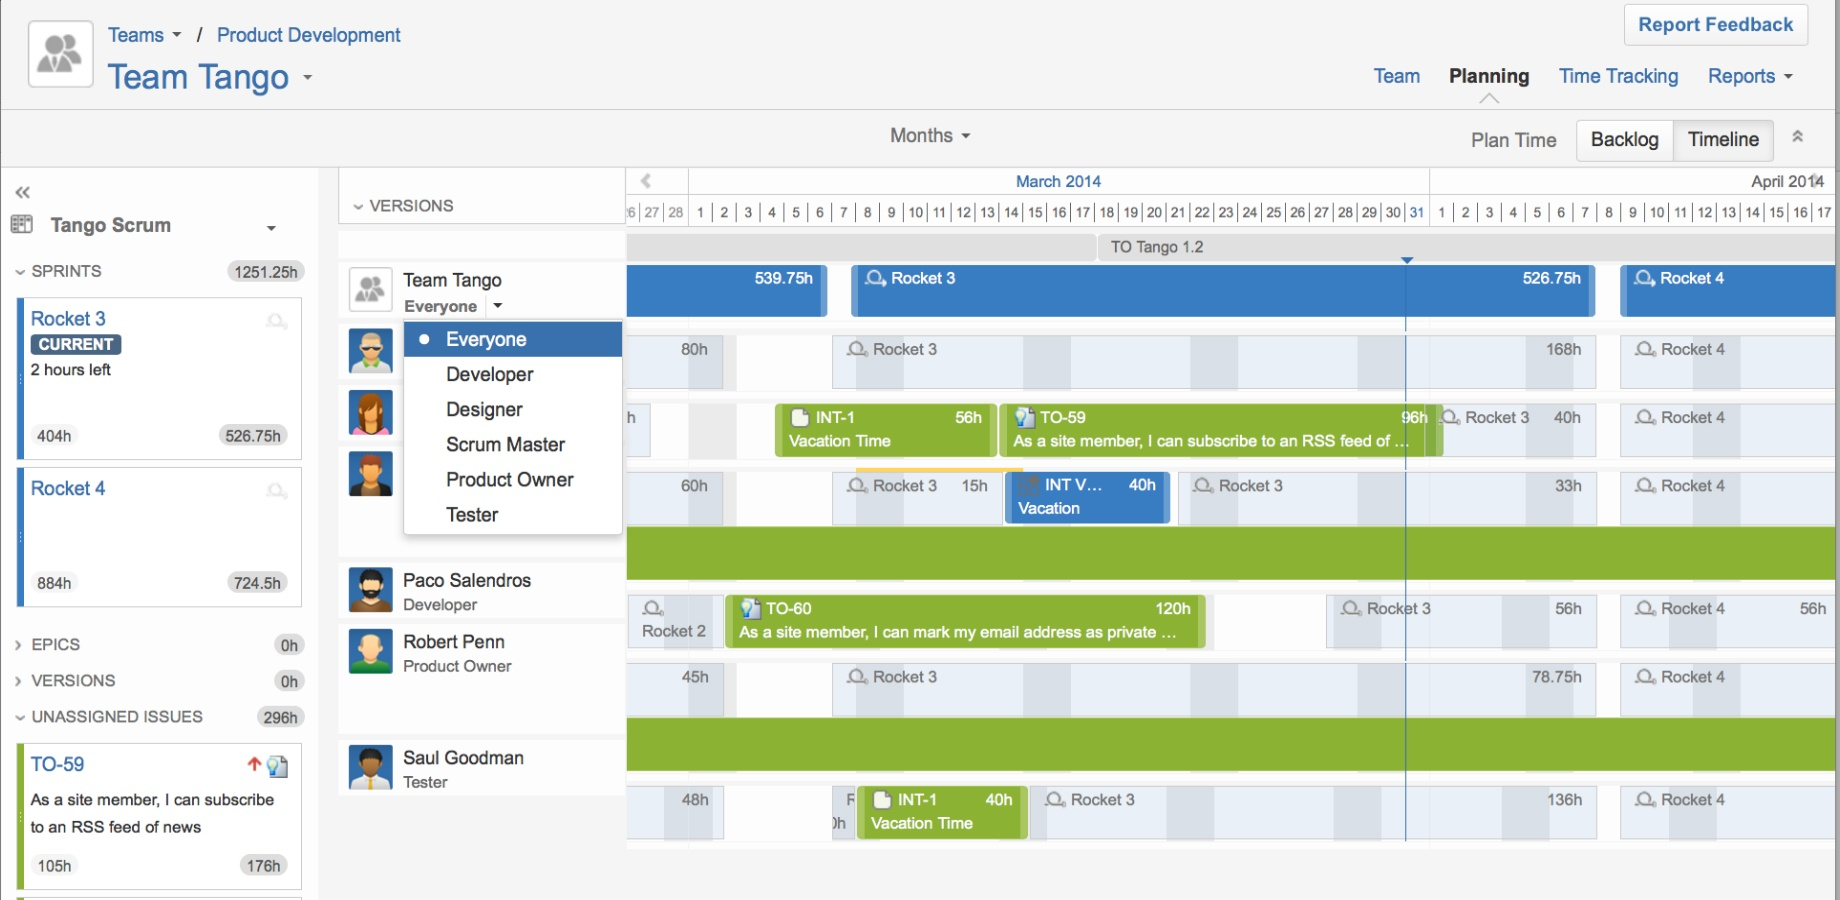 coordinated high-level, scalable release planning for product development in Tempo Planner 2.0 for Atlassian's JIRA agile project management and planning solution. Visualize, manage, deliver with Tempo Planner.